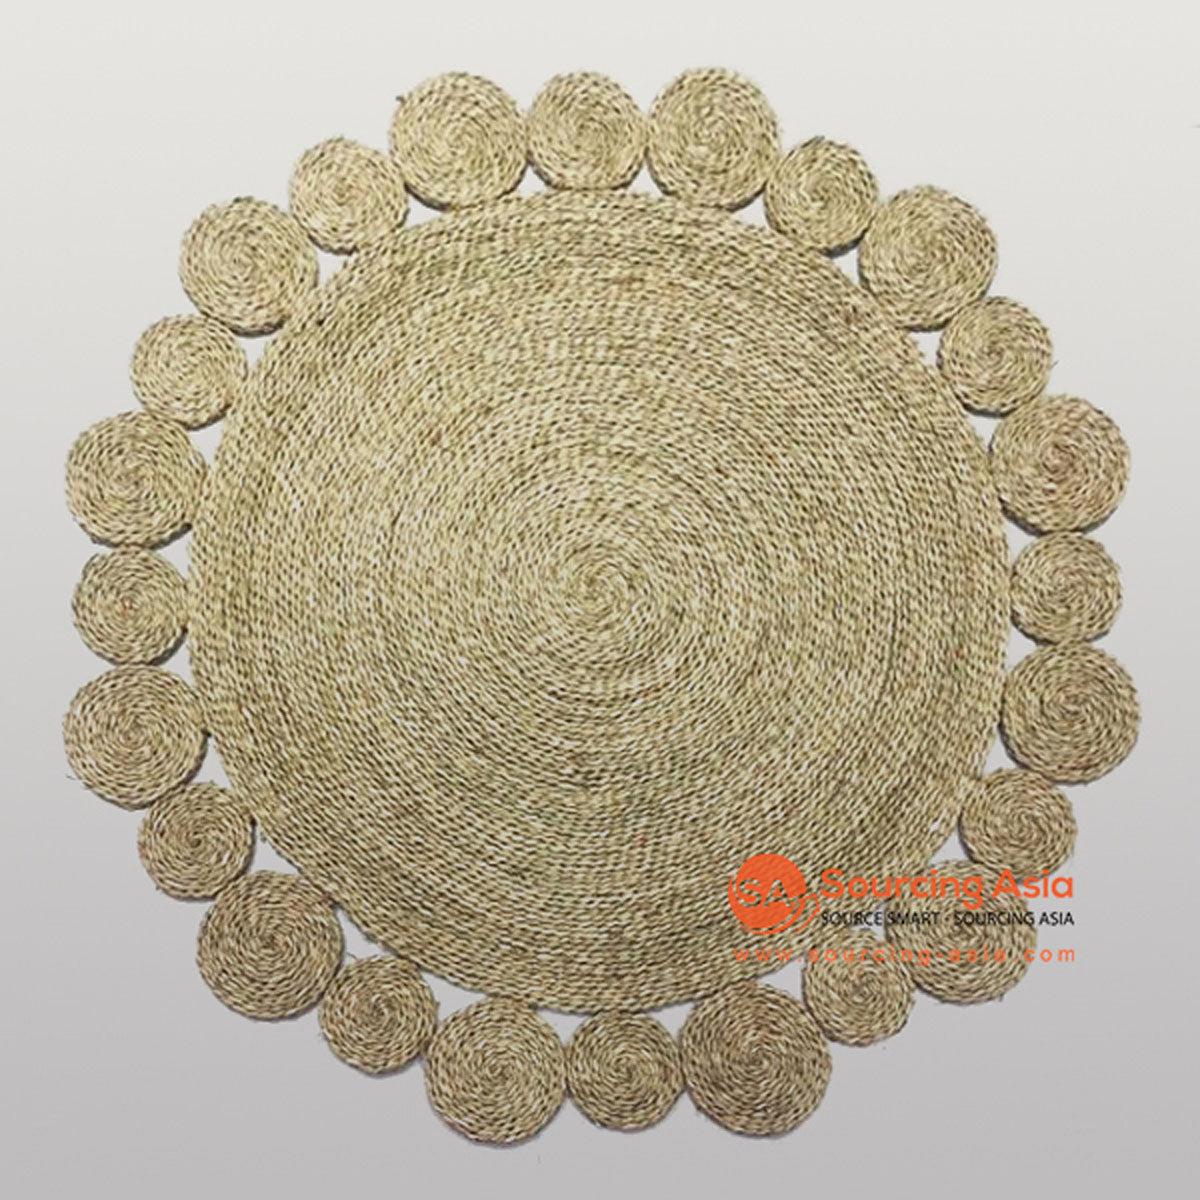 SHL048-2 NATURAL MENDONG DECORATIVE ROUND RUG